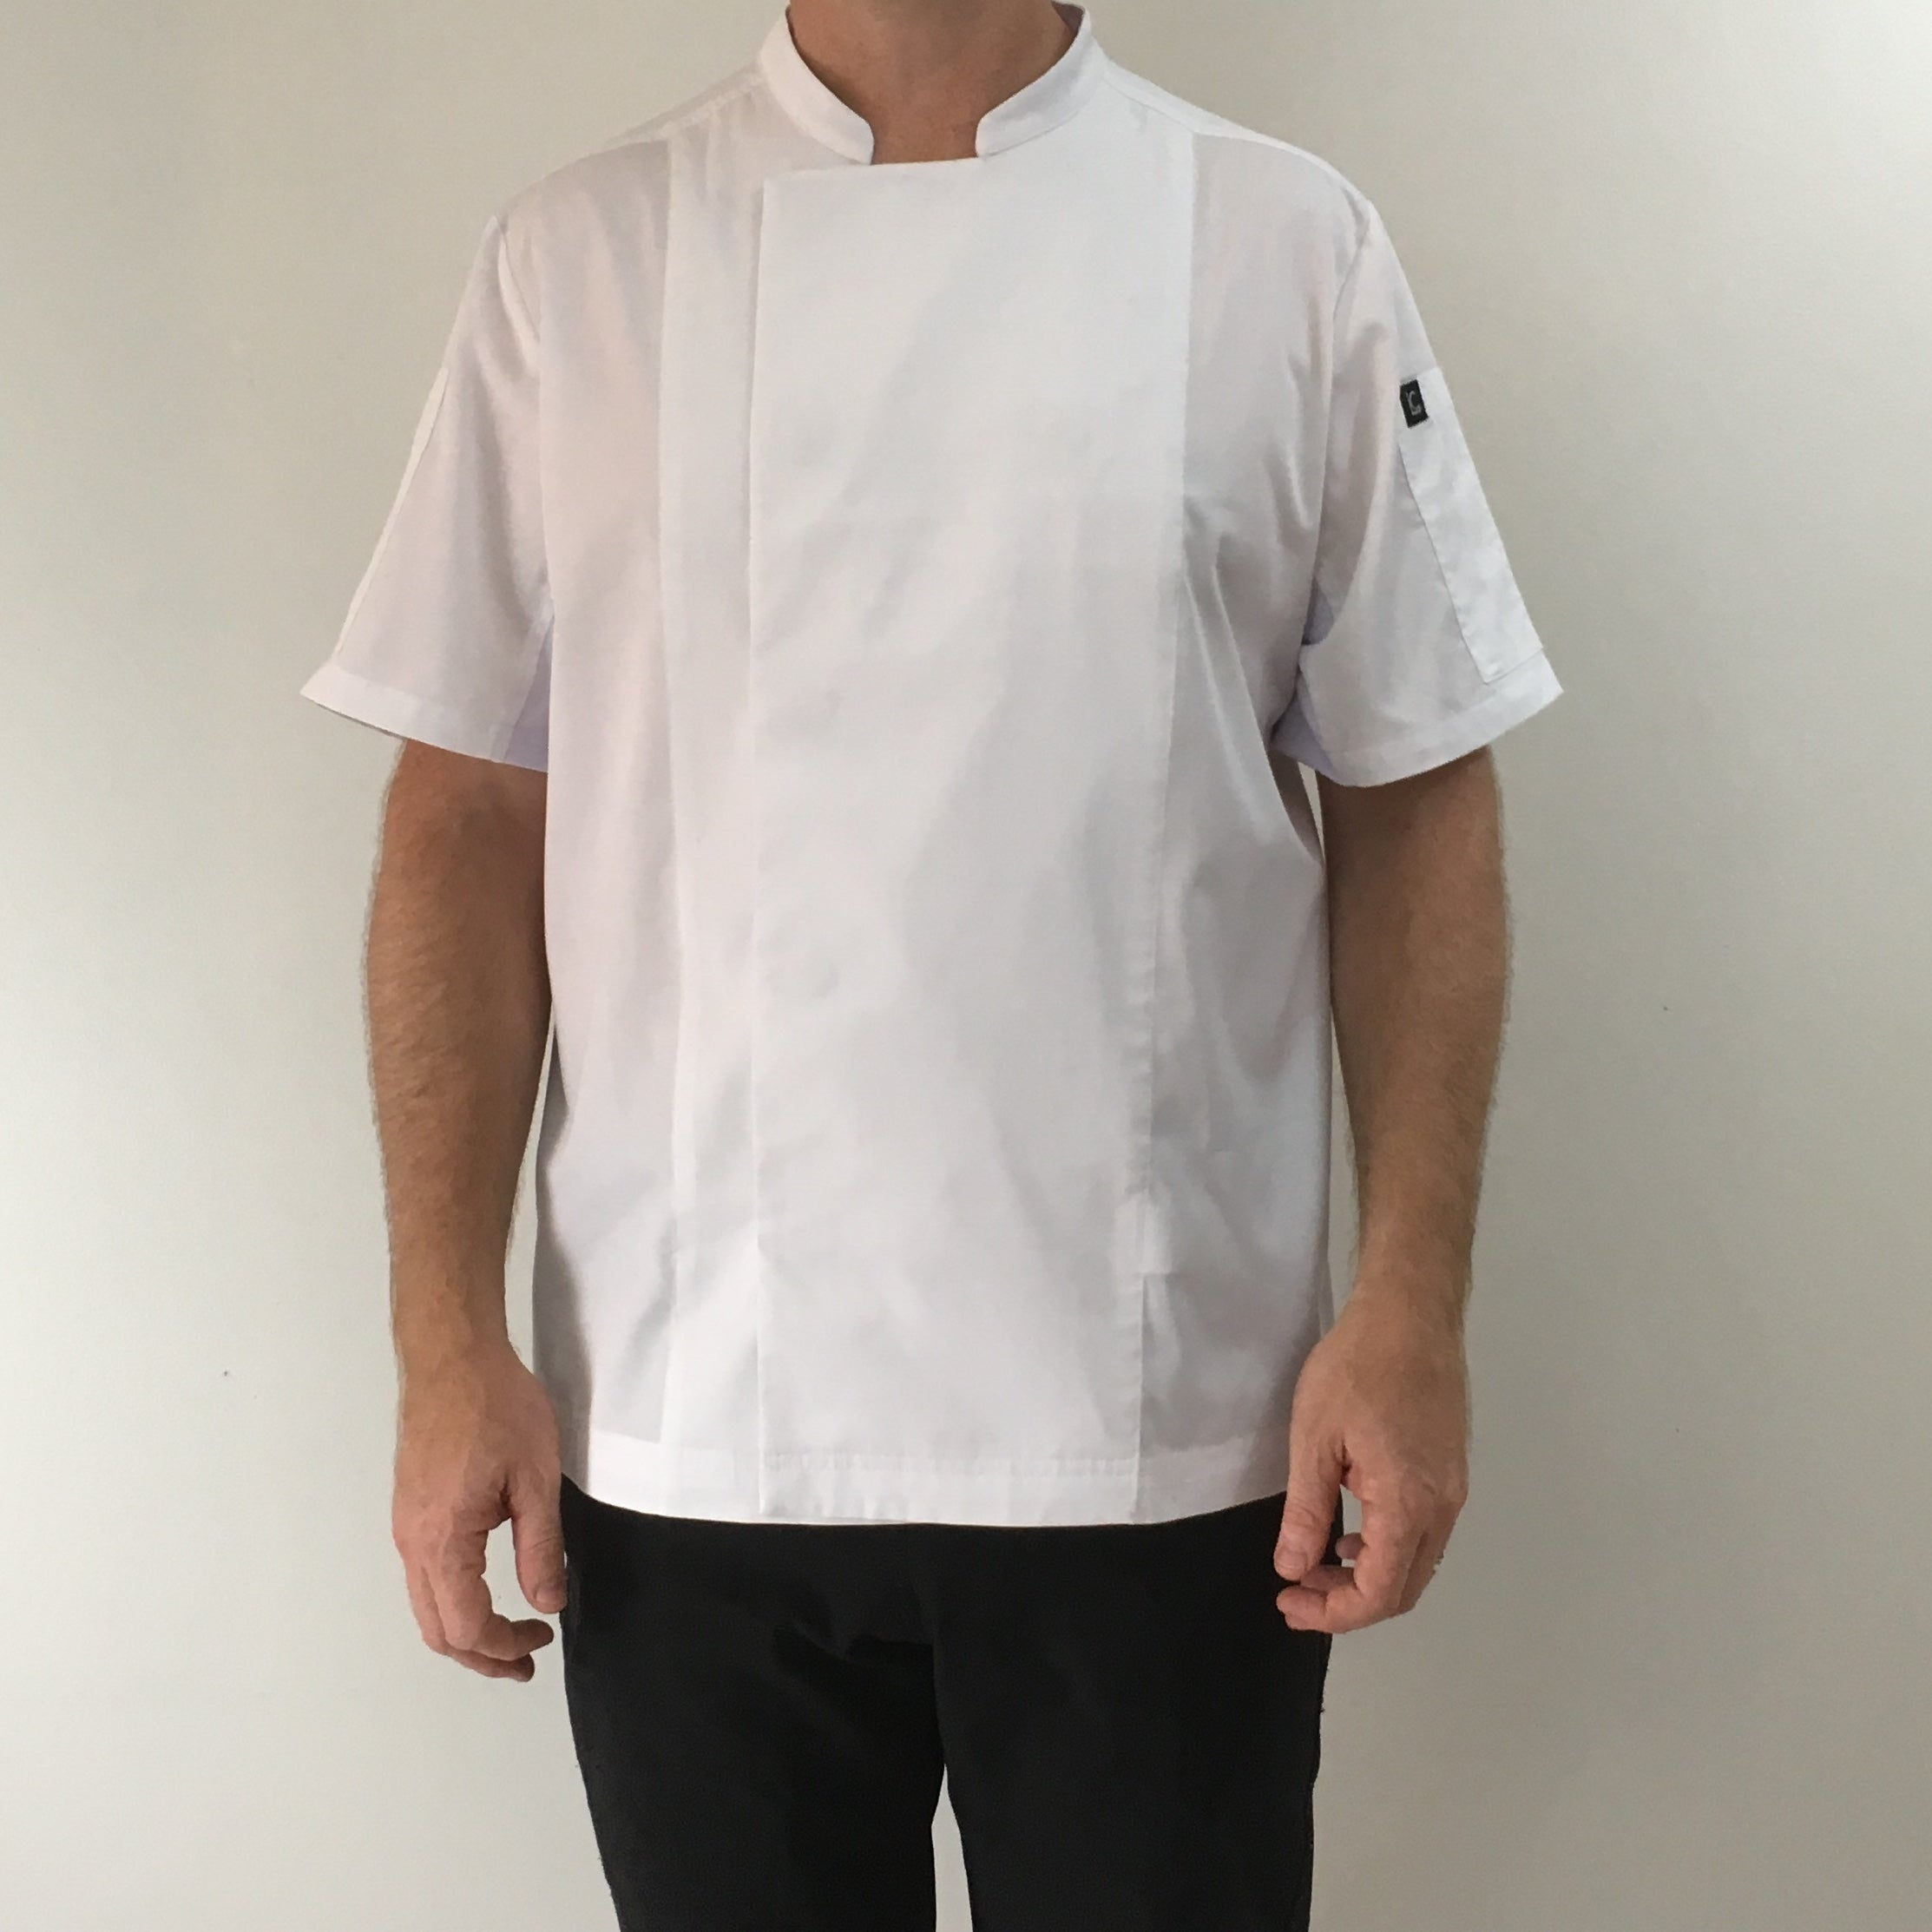 The Anderson Chef Coat